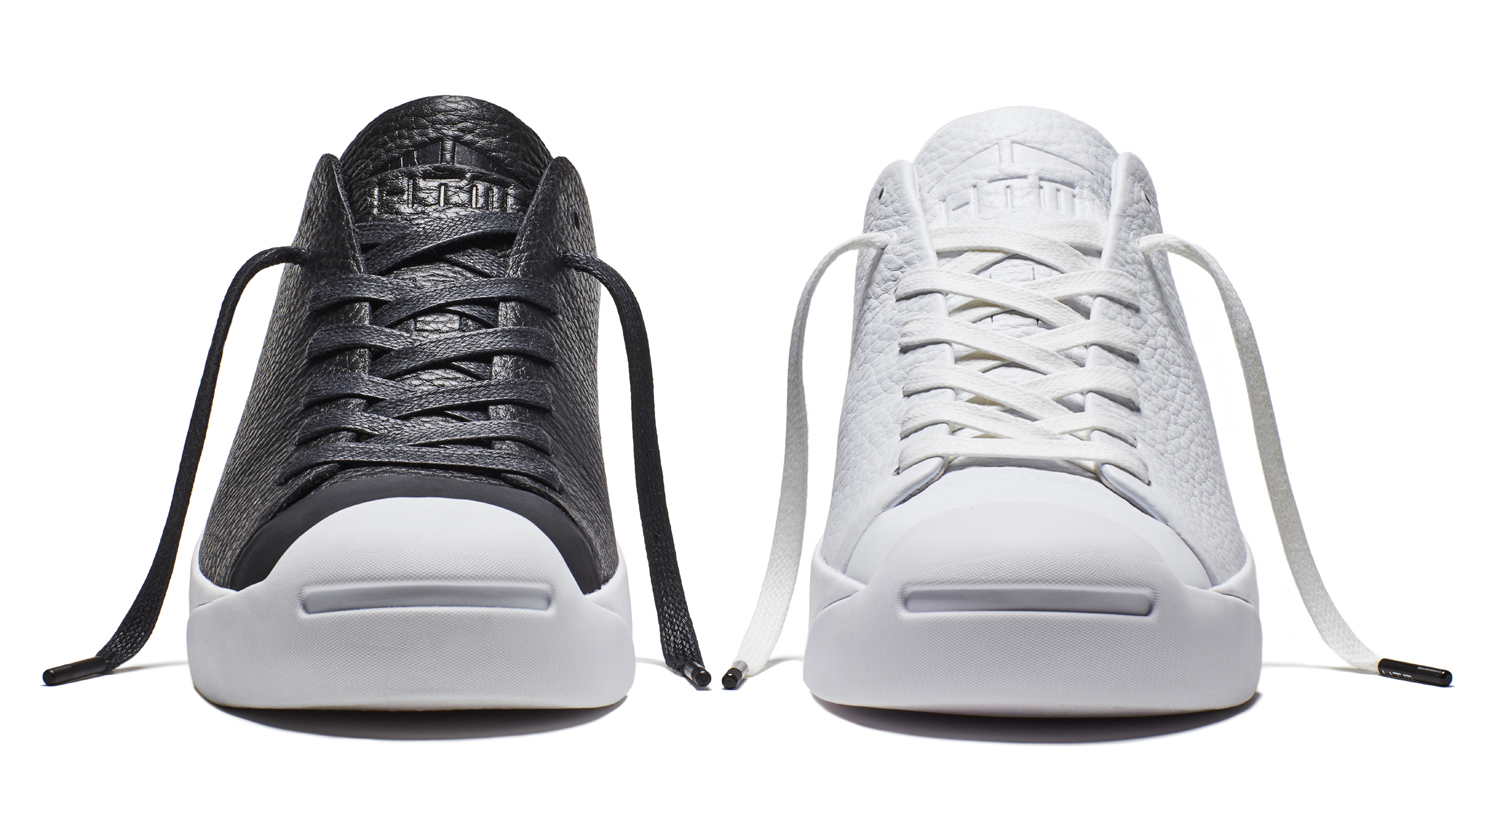 HTM Converse Jack Purcell Front